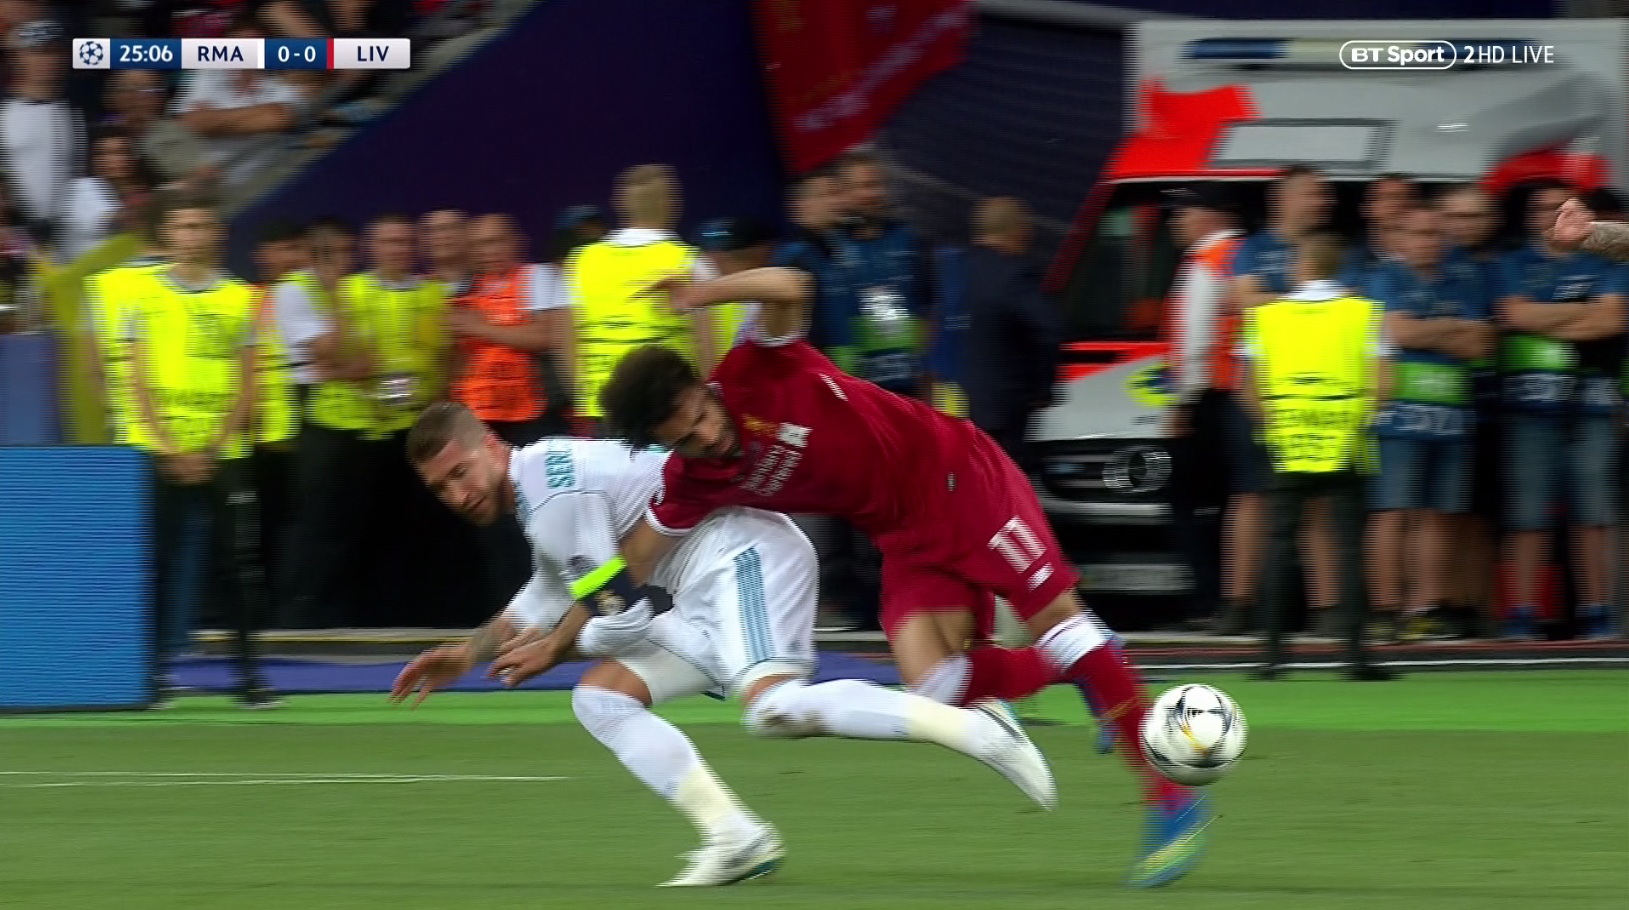 The Madrid captain showed off his best wrestling move